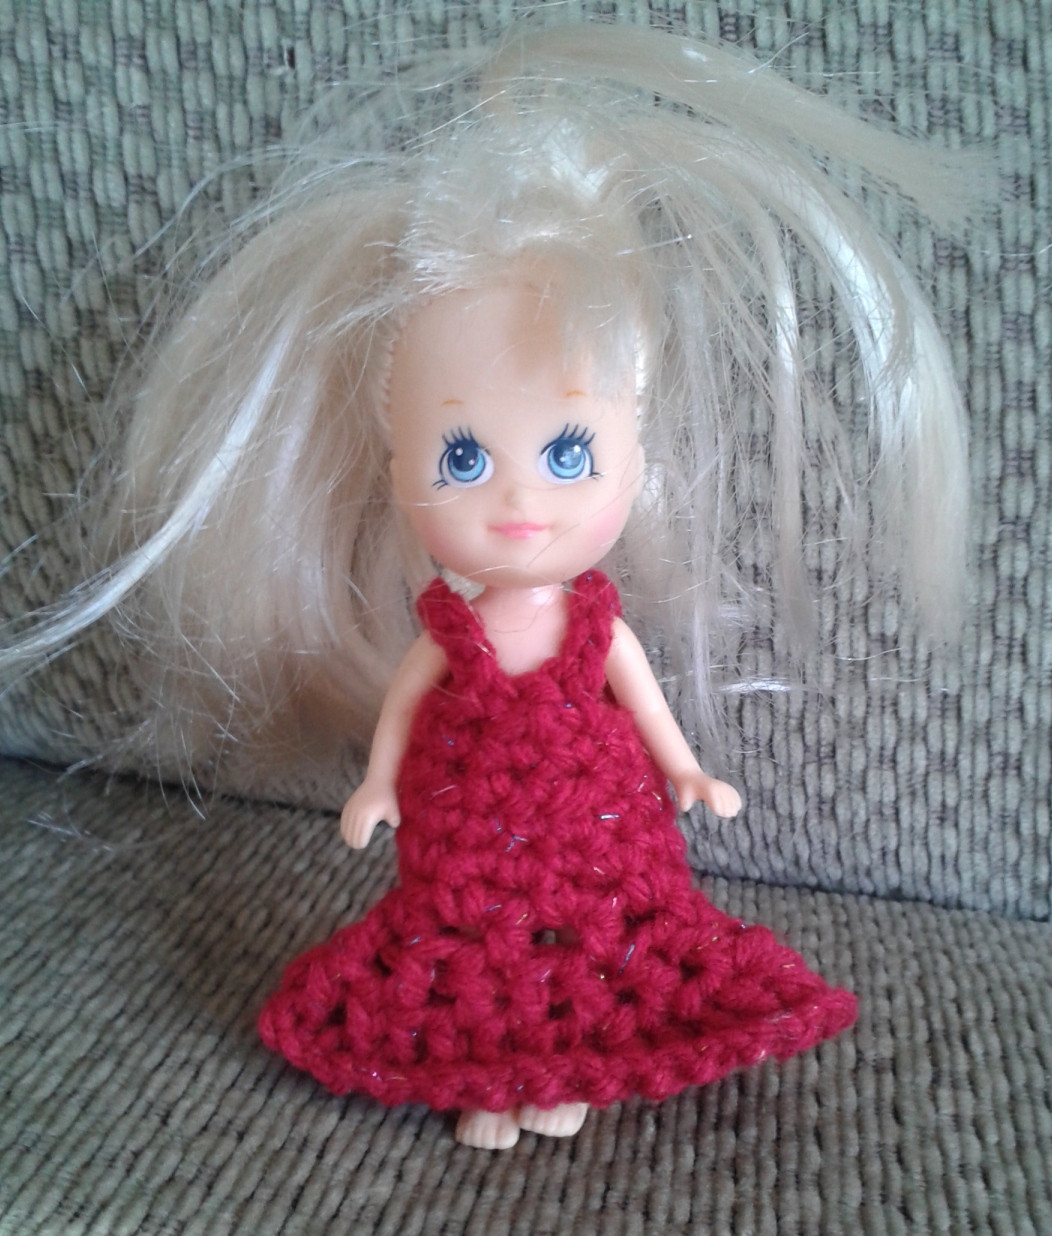 Doll Patterns Inspirational Small Doll Clothing Free Patterns Of Doll Patterns Best Of Rag Doll Patterns